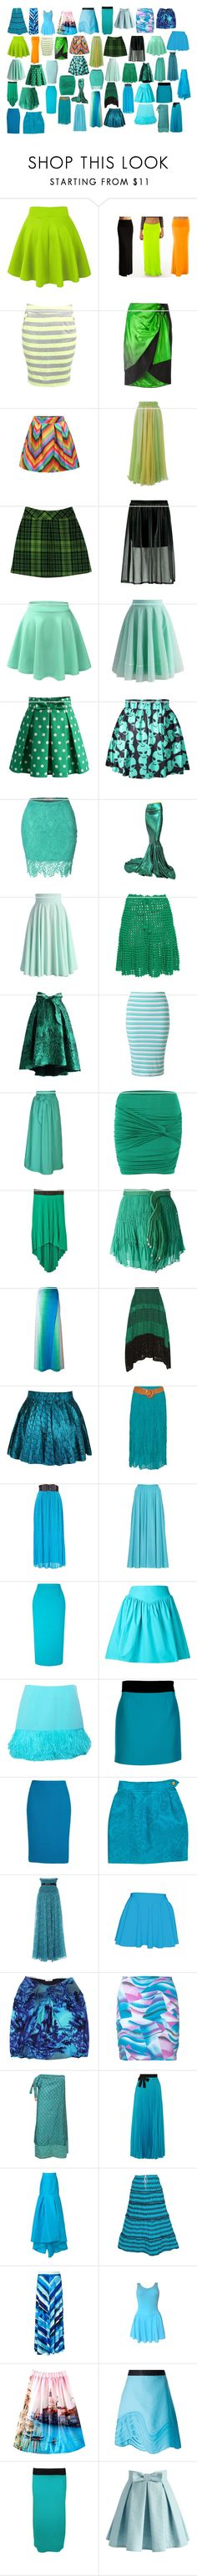 """Skirts 8"" by spellcasters ❤ liked on Polyvore featuring Stylista Original, Maison Margiela, Chicwish, Anna Sui, LE3NO, Helen Rödel, Miss Selfridge, jon & anna, Jay Ahr and Missoni"